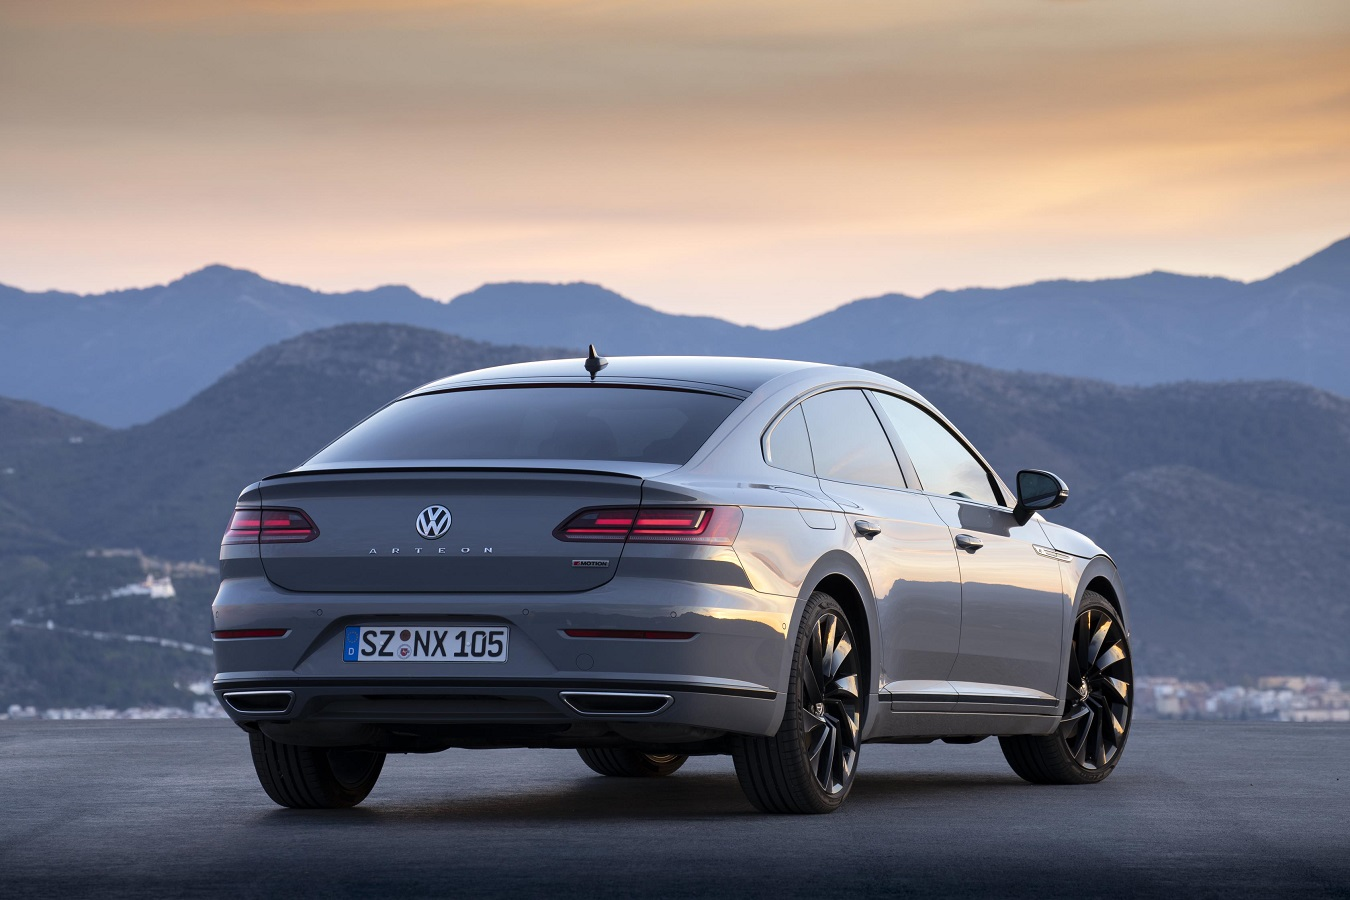 Rear view of the Volkswagen Arteon R-Line Edition